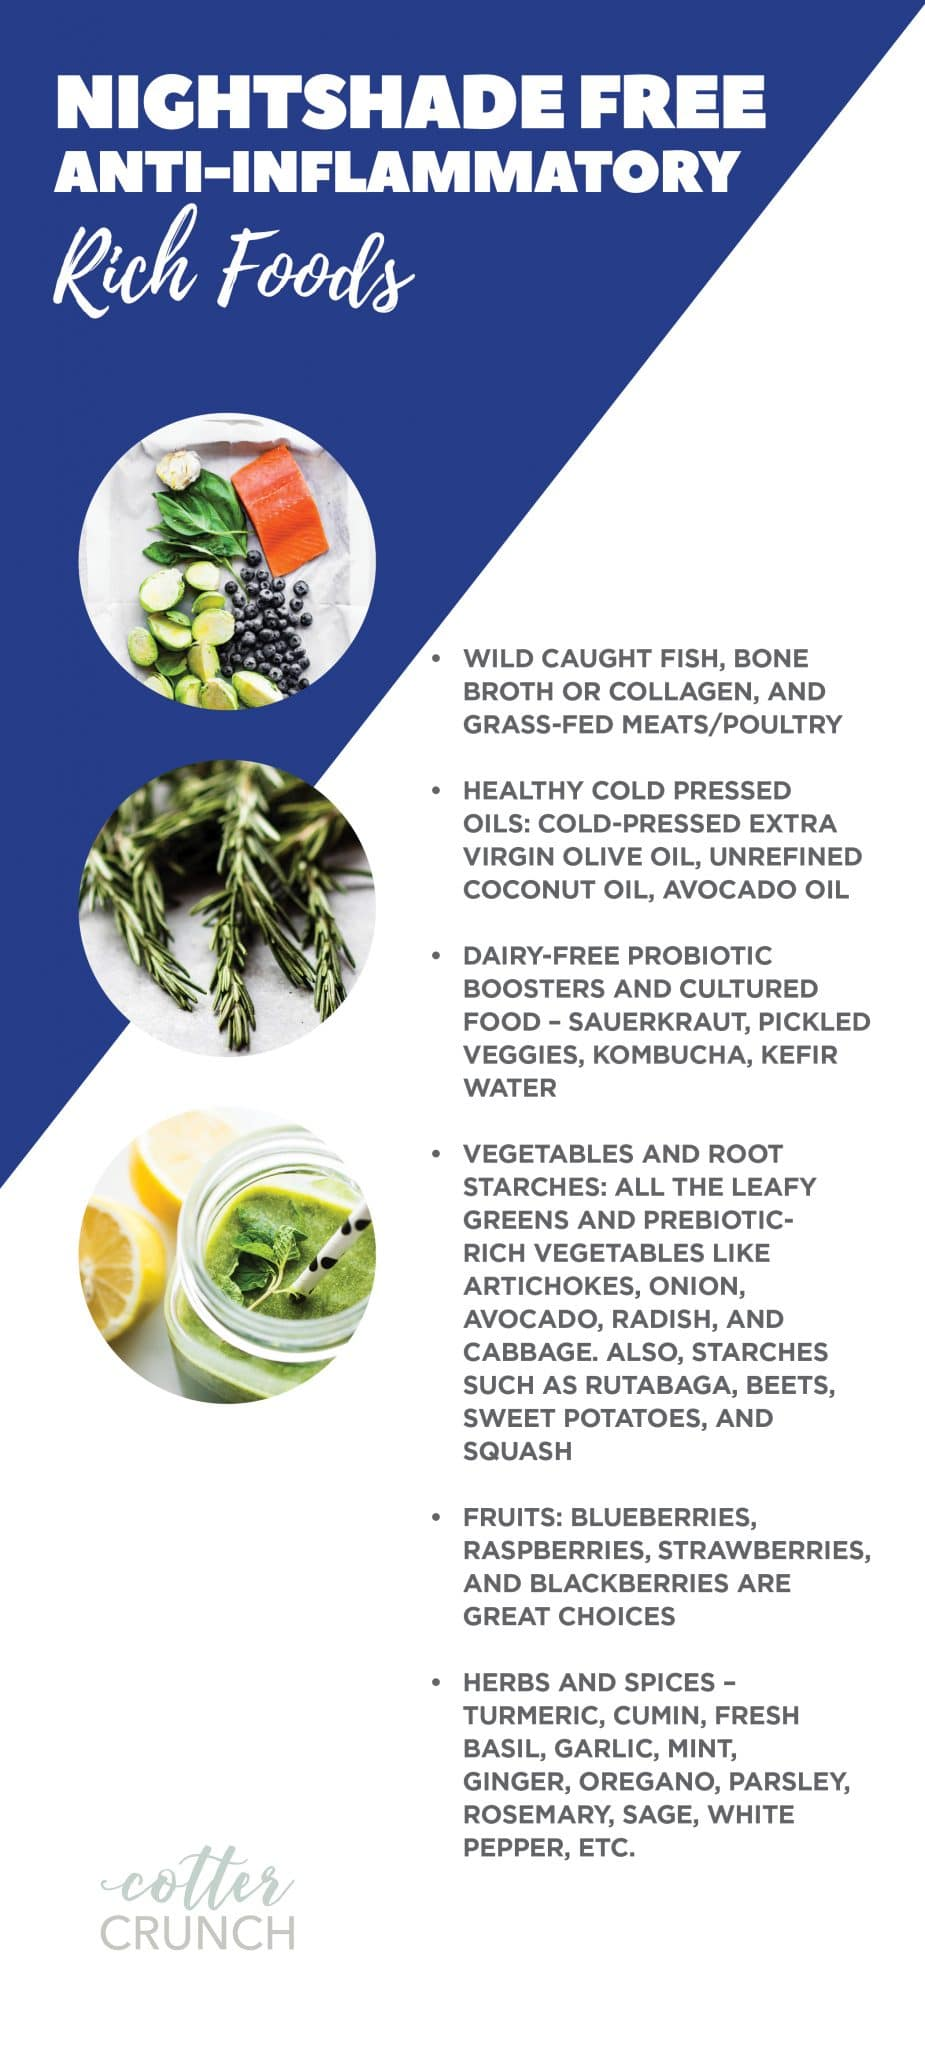 titled info graphic of nightshade free anti-inflammatory rich foods